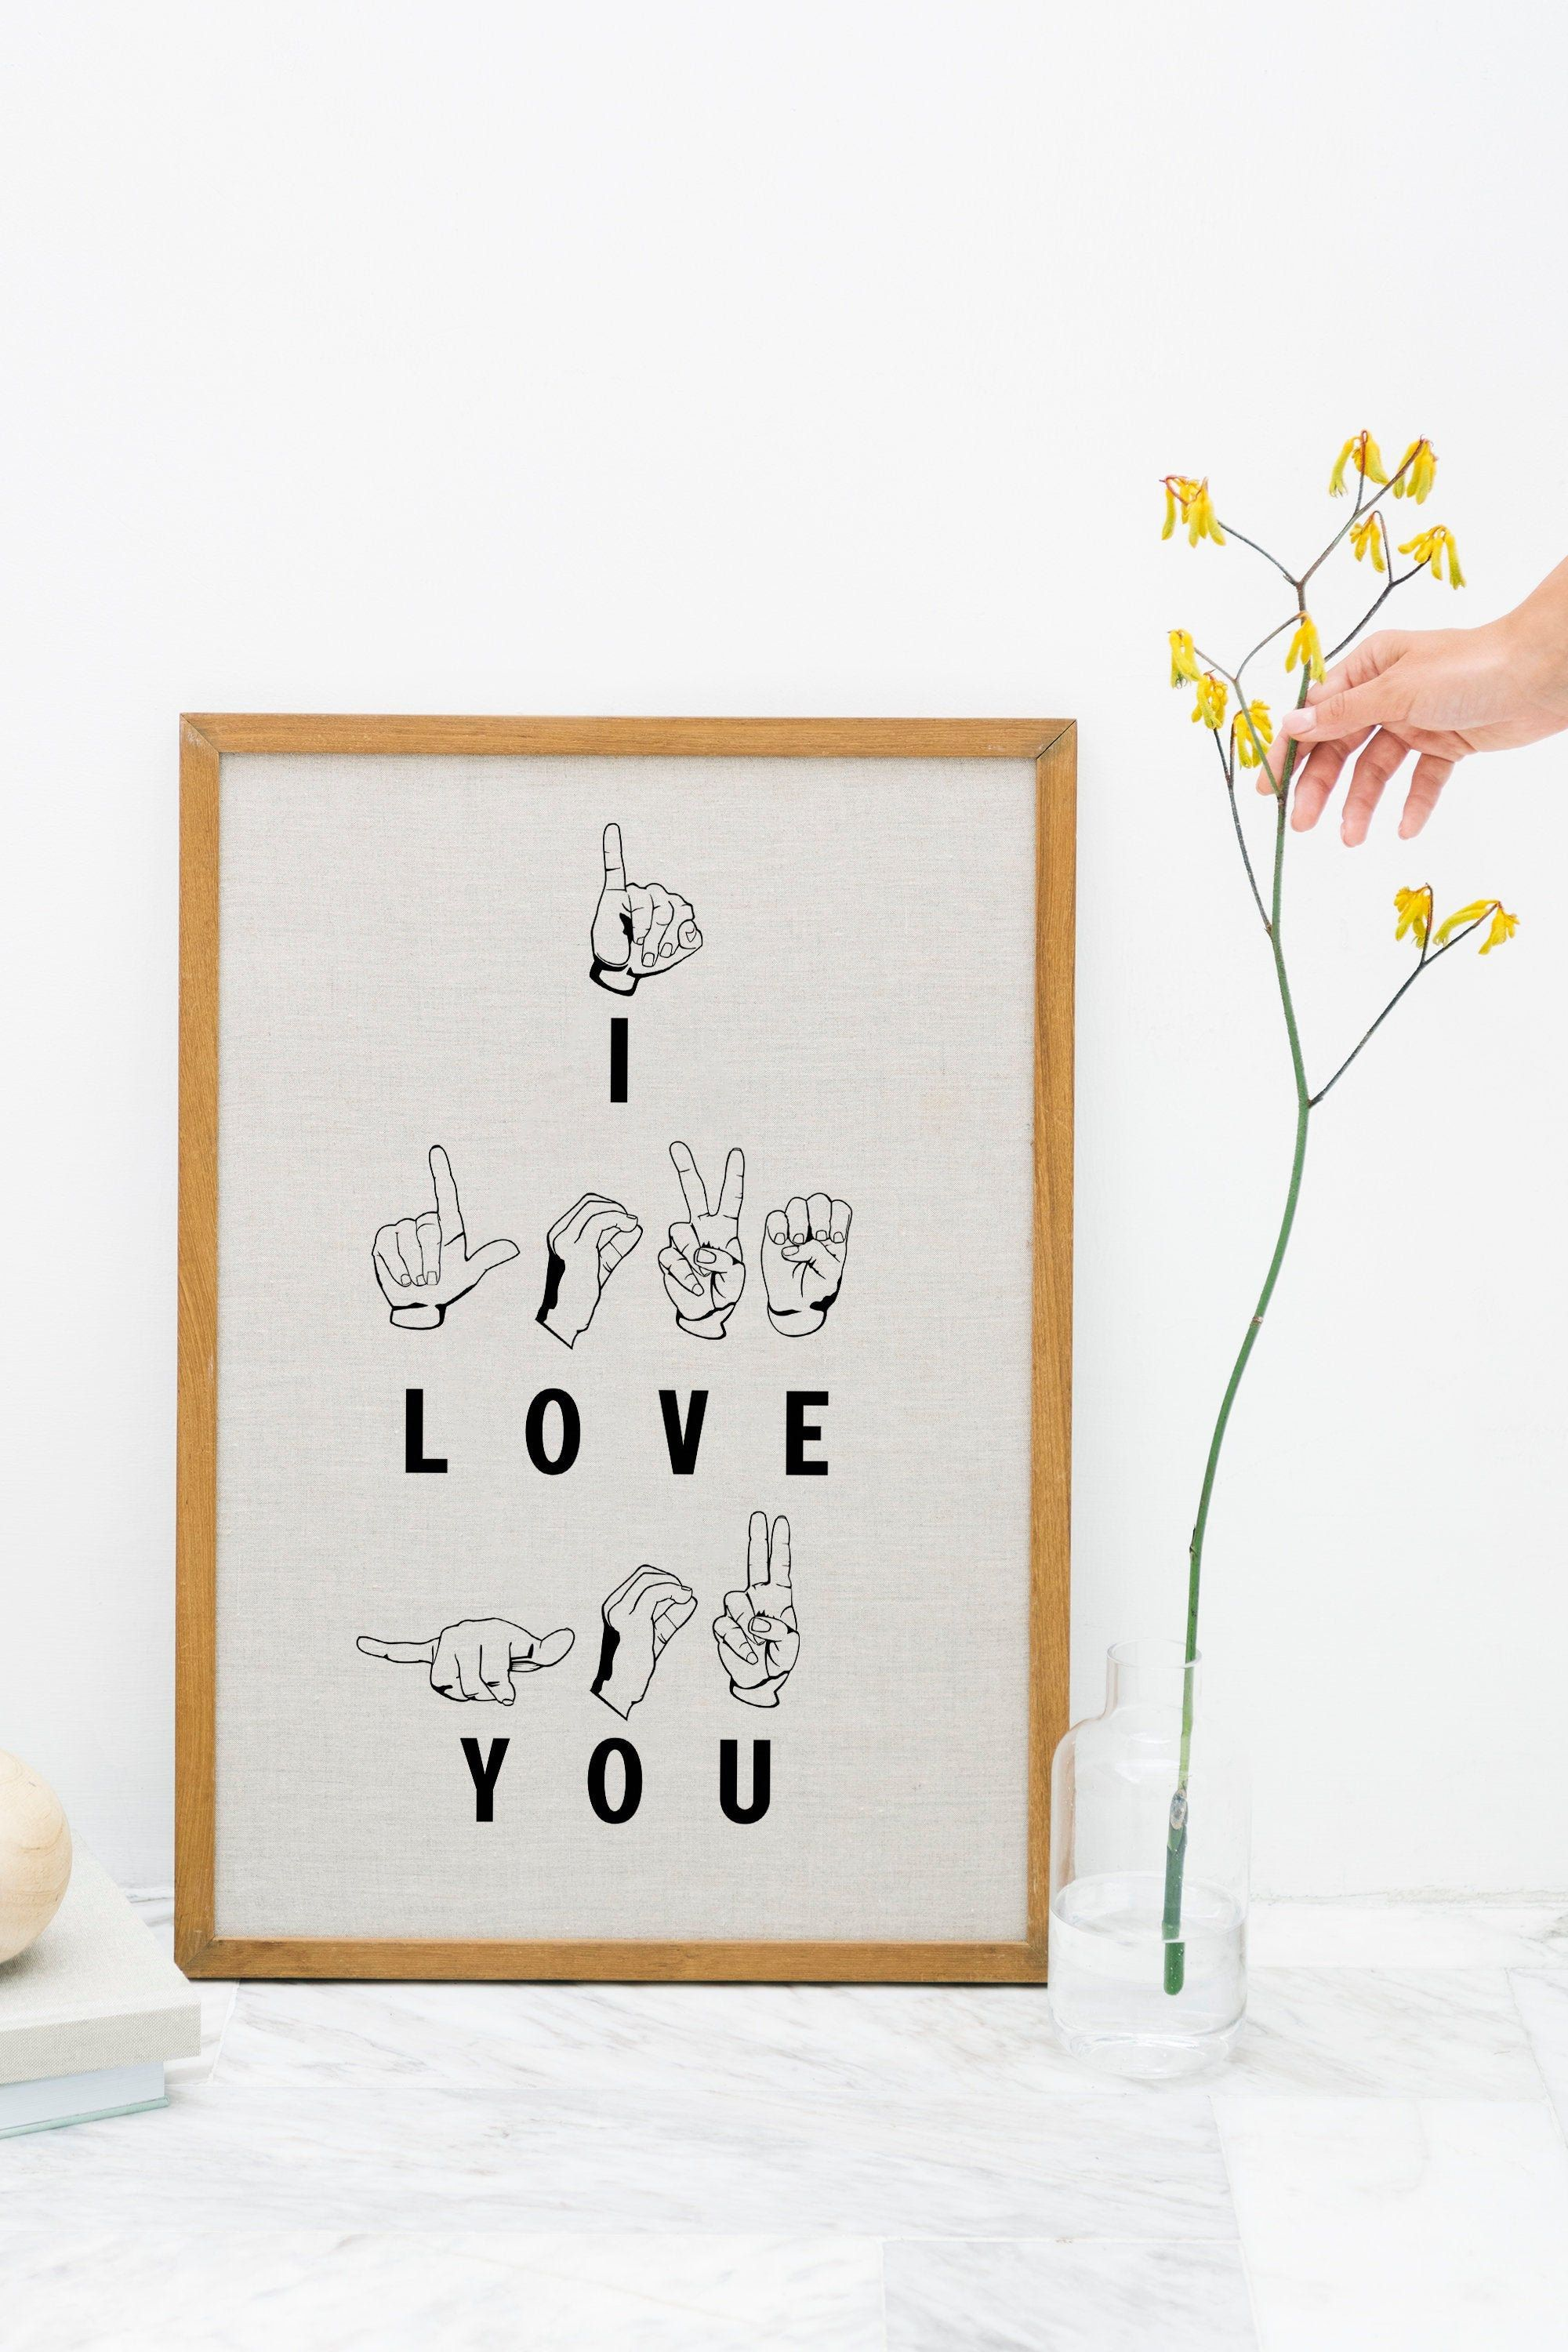 How To Say I Love You In American Sign Language